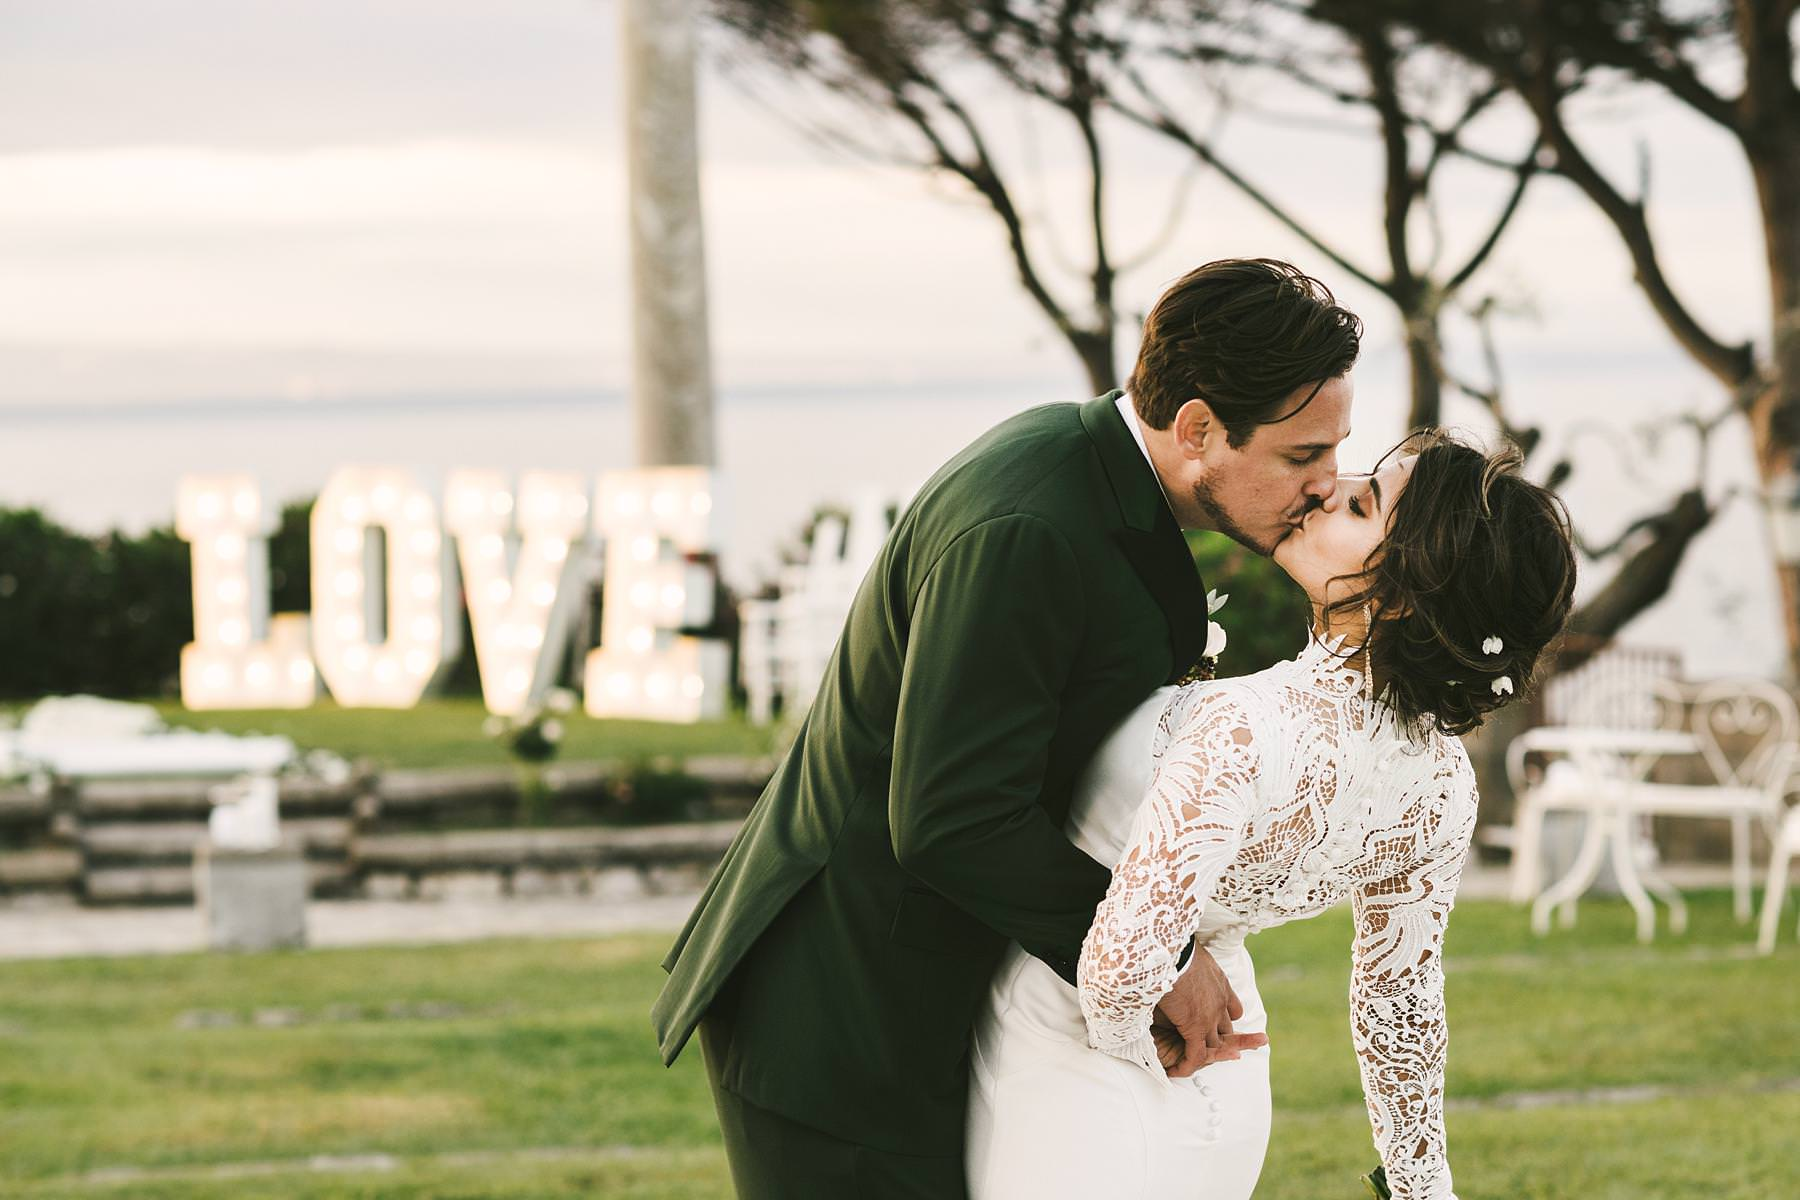 Emotional and intimate wedding photo for a destination wedding in Sorrento at Villa Angelina